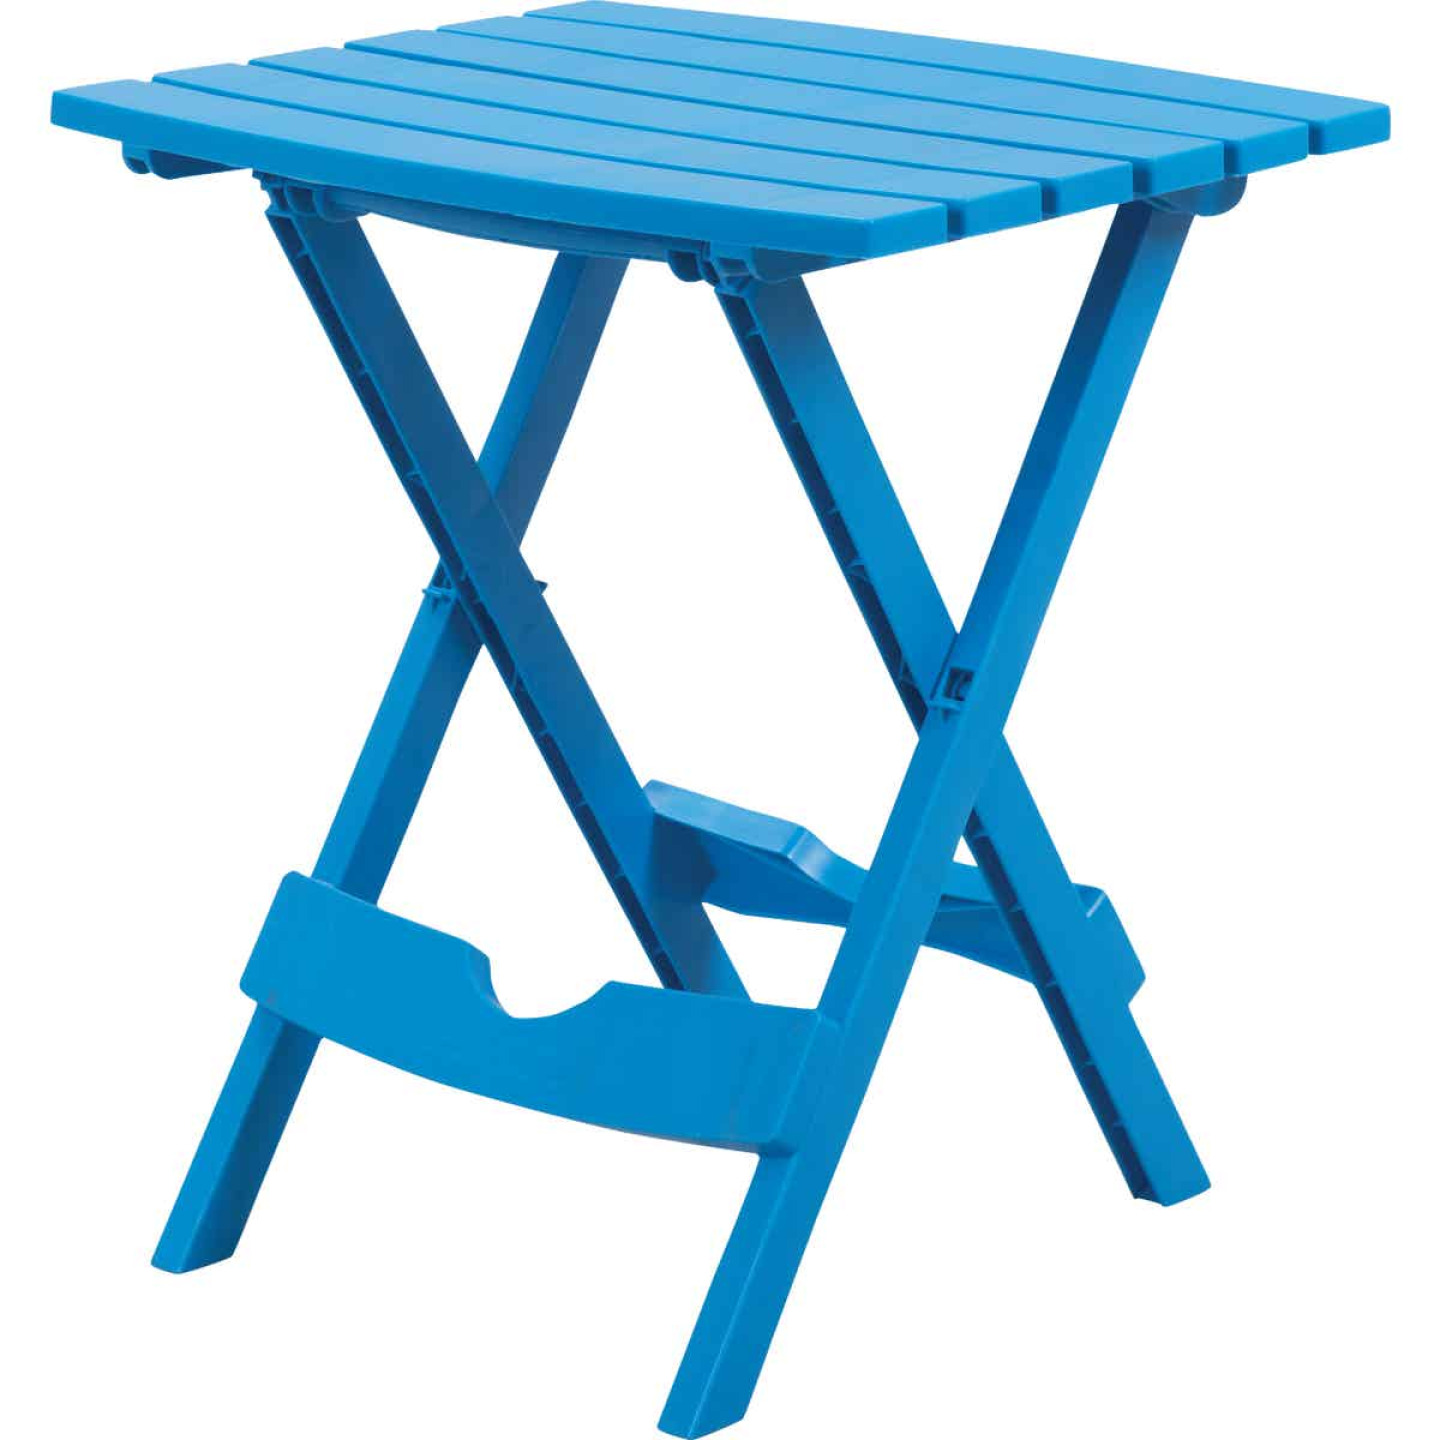 Adams Quik-Fold Blue 15 In. x 17.5 In. Rectangle Resin Folding Side Table Image 1